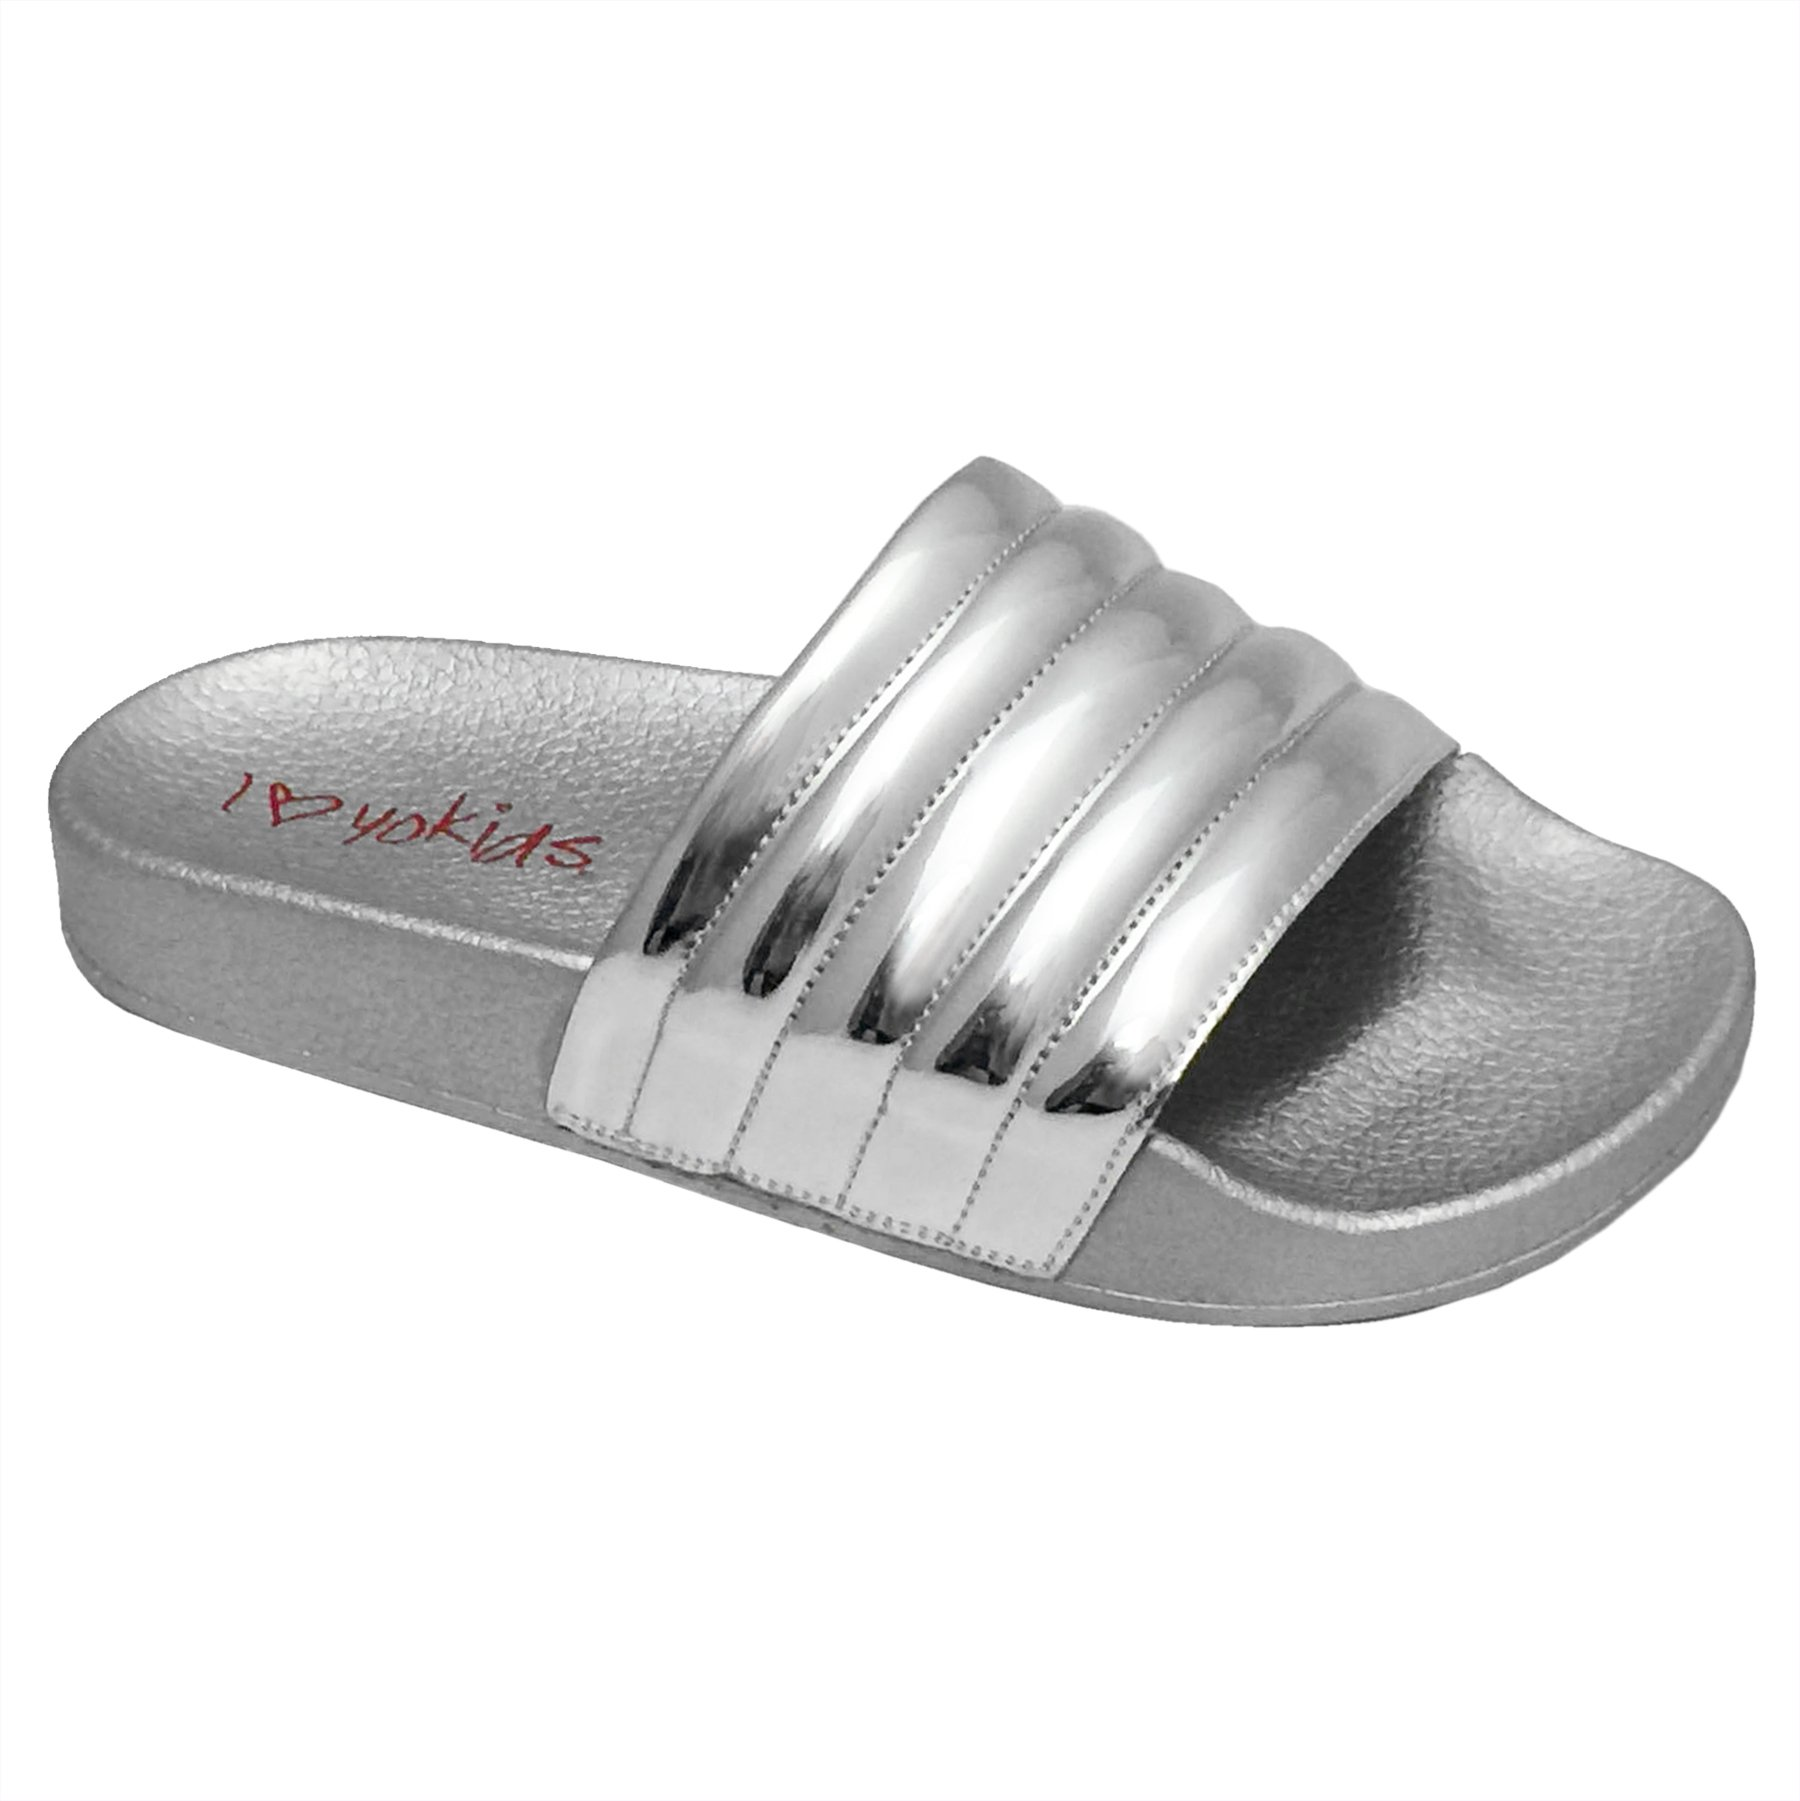 Rio-107K Sandals, Slippers, Girls and Boys Slip on Metallic Pool Slides with a Quilted Upper (2, Silver)